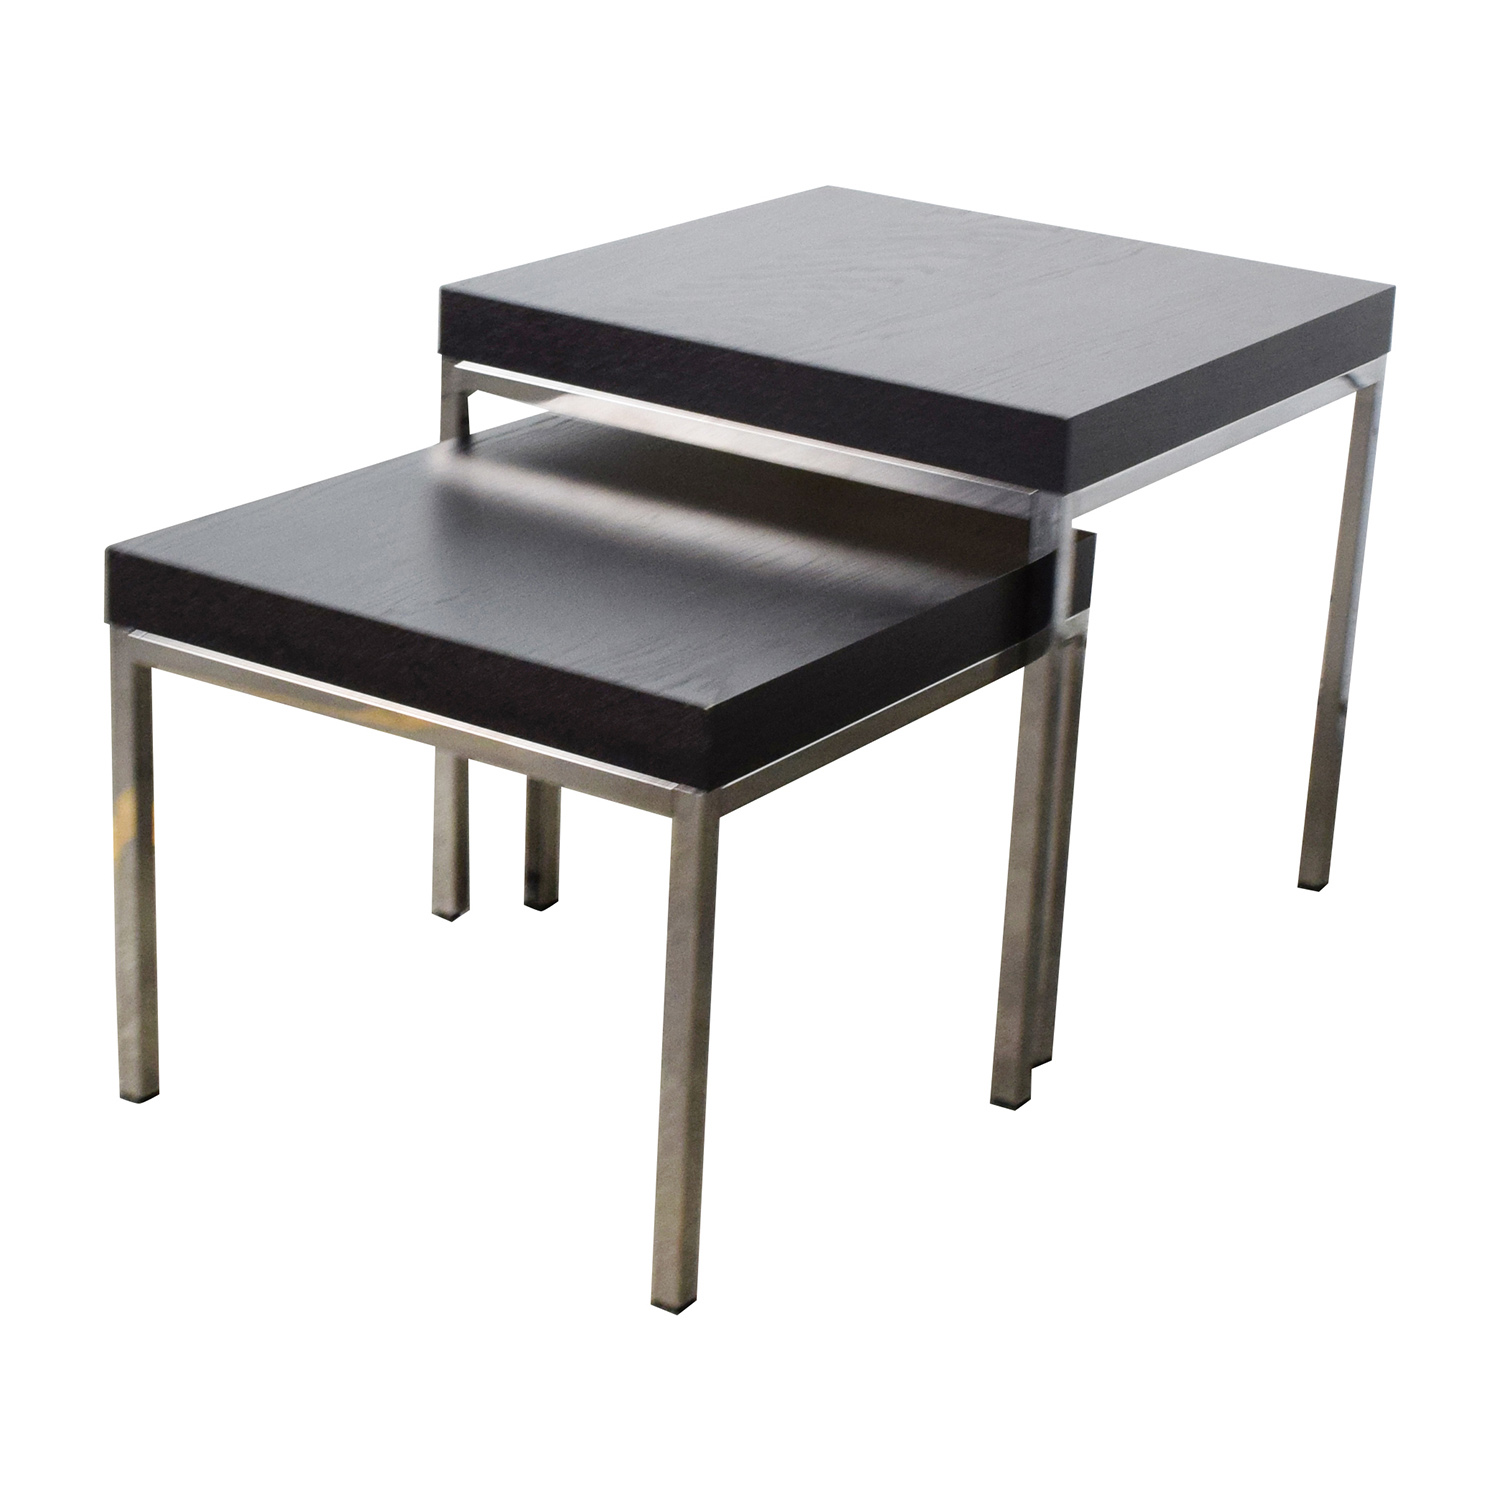 IKEA IKEA Klubbo Black And Chrome Nesting Tables